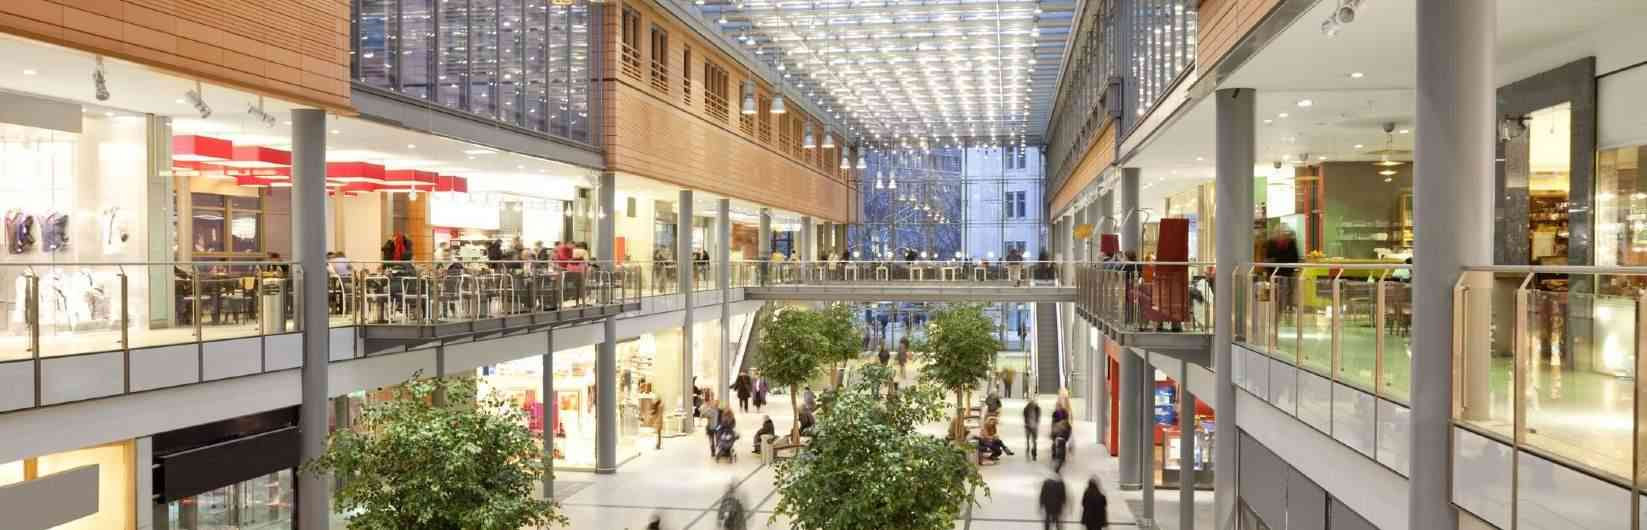 ca213c8bf46 Savills UK | Shopping Centres